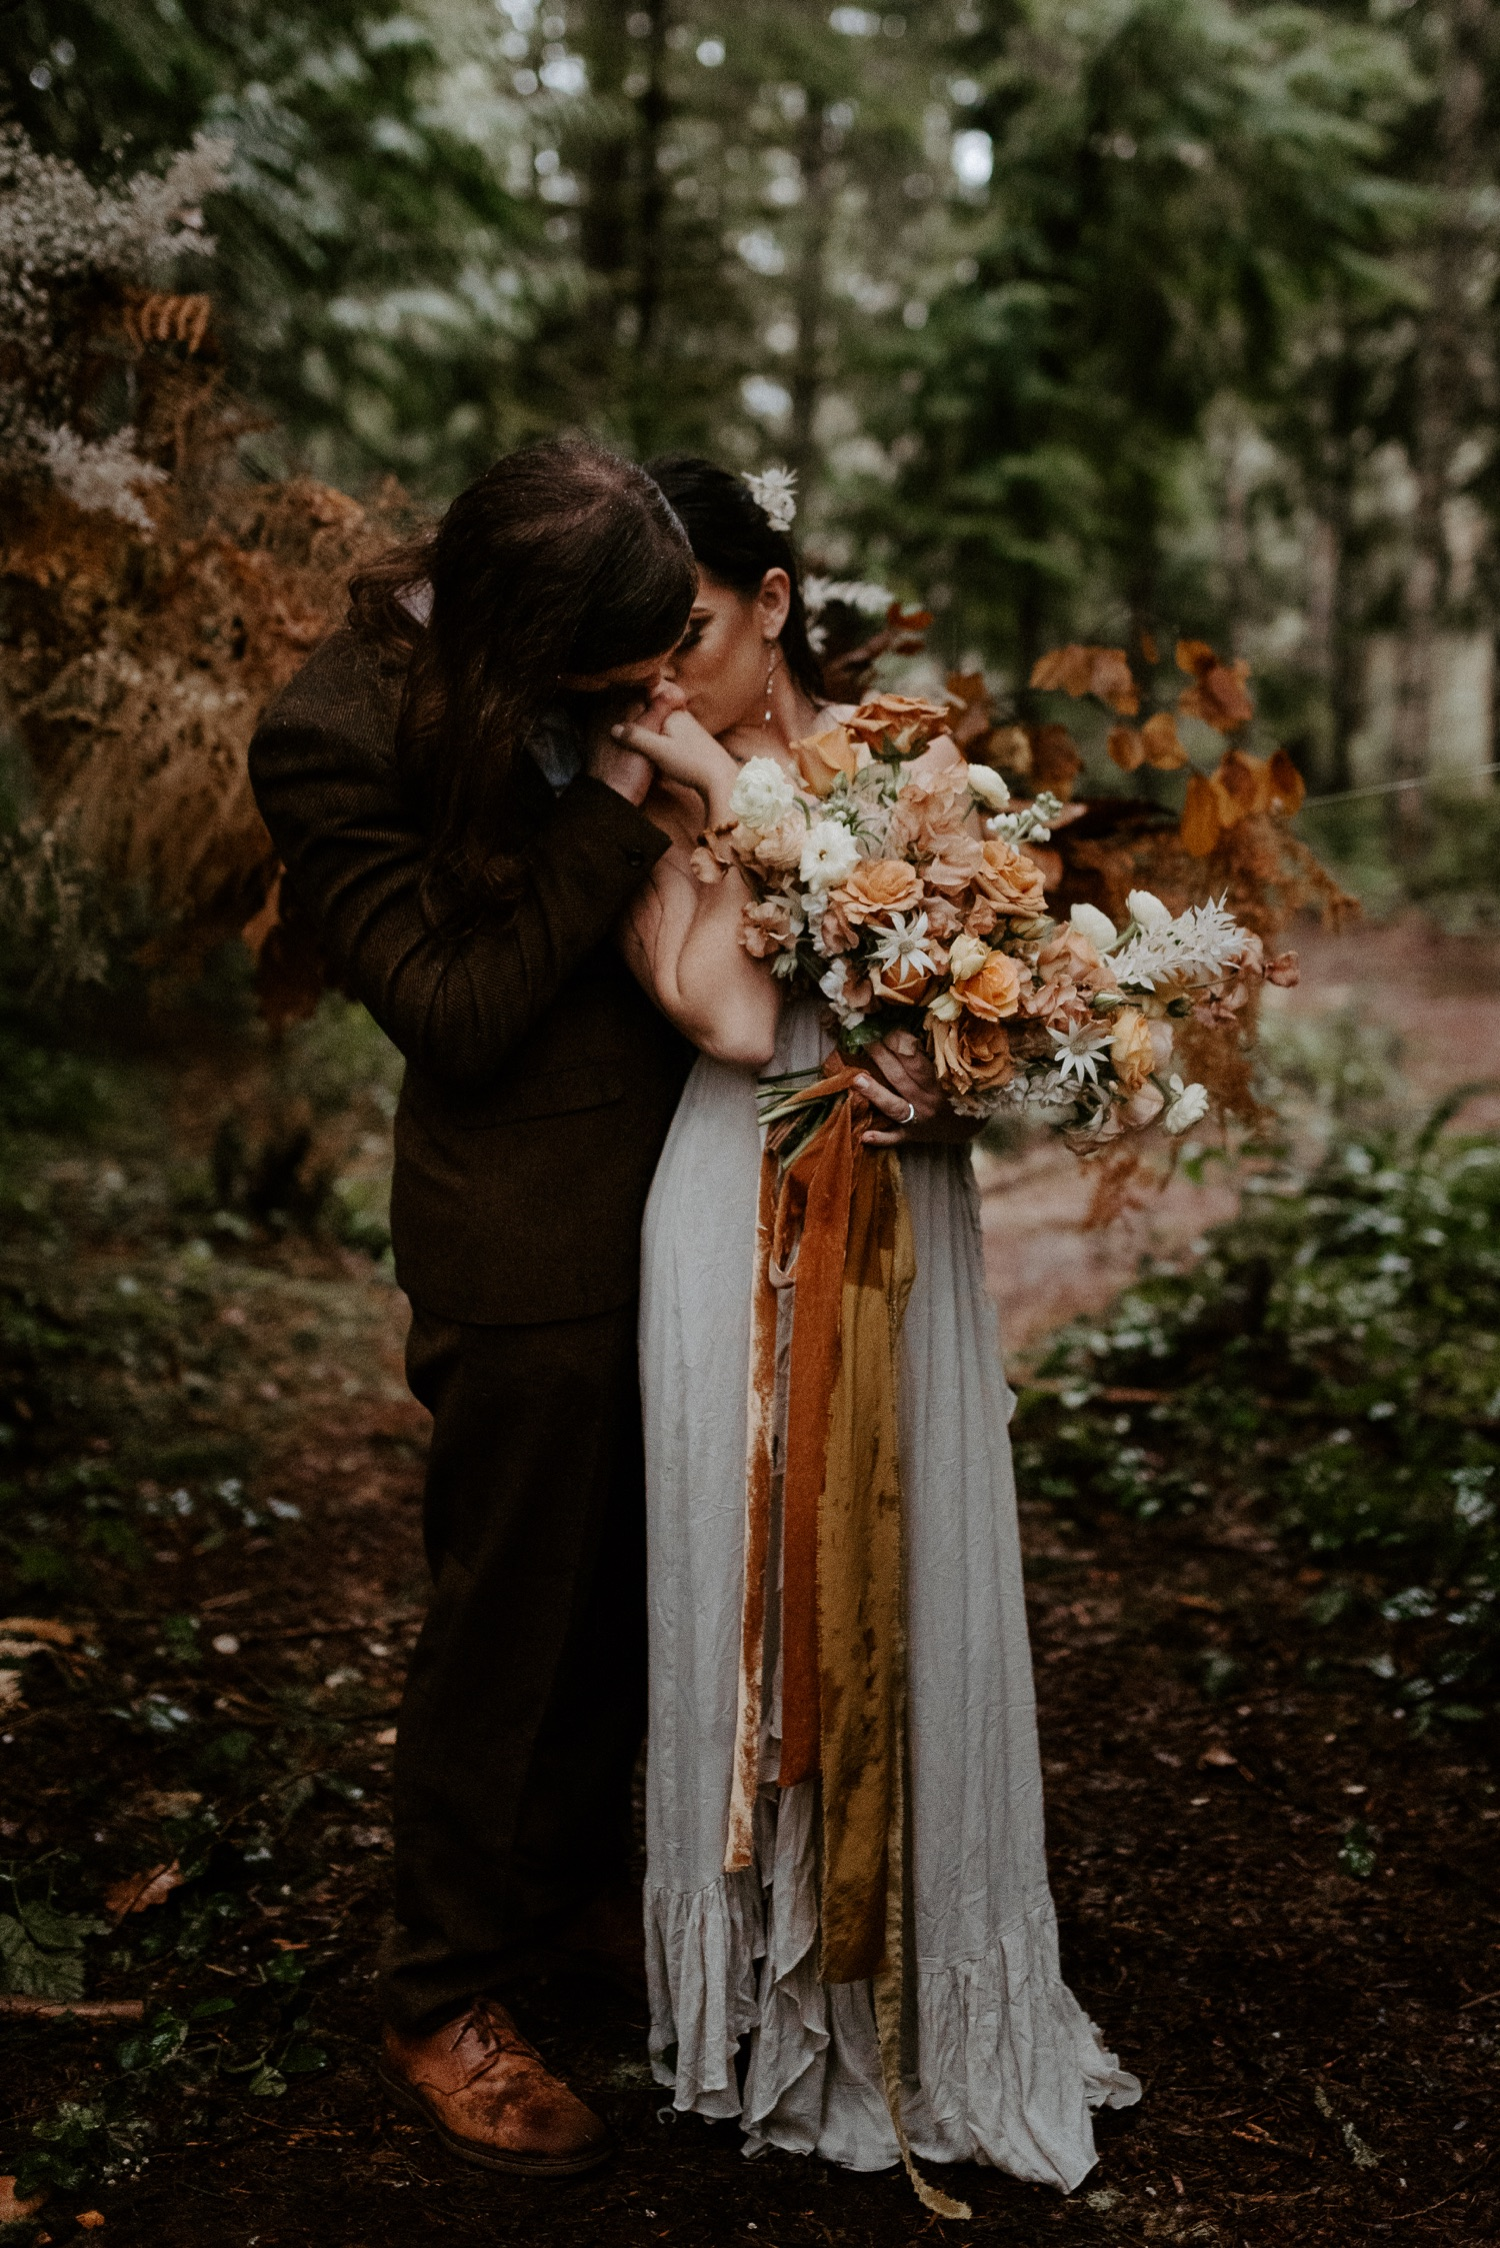 The Woodlands House Sandy Oregon Elopement Portland Elopement Photographer PNW Adventurous Elopement Anais Possamai Photography 021